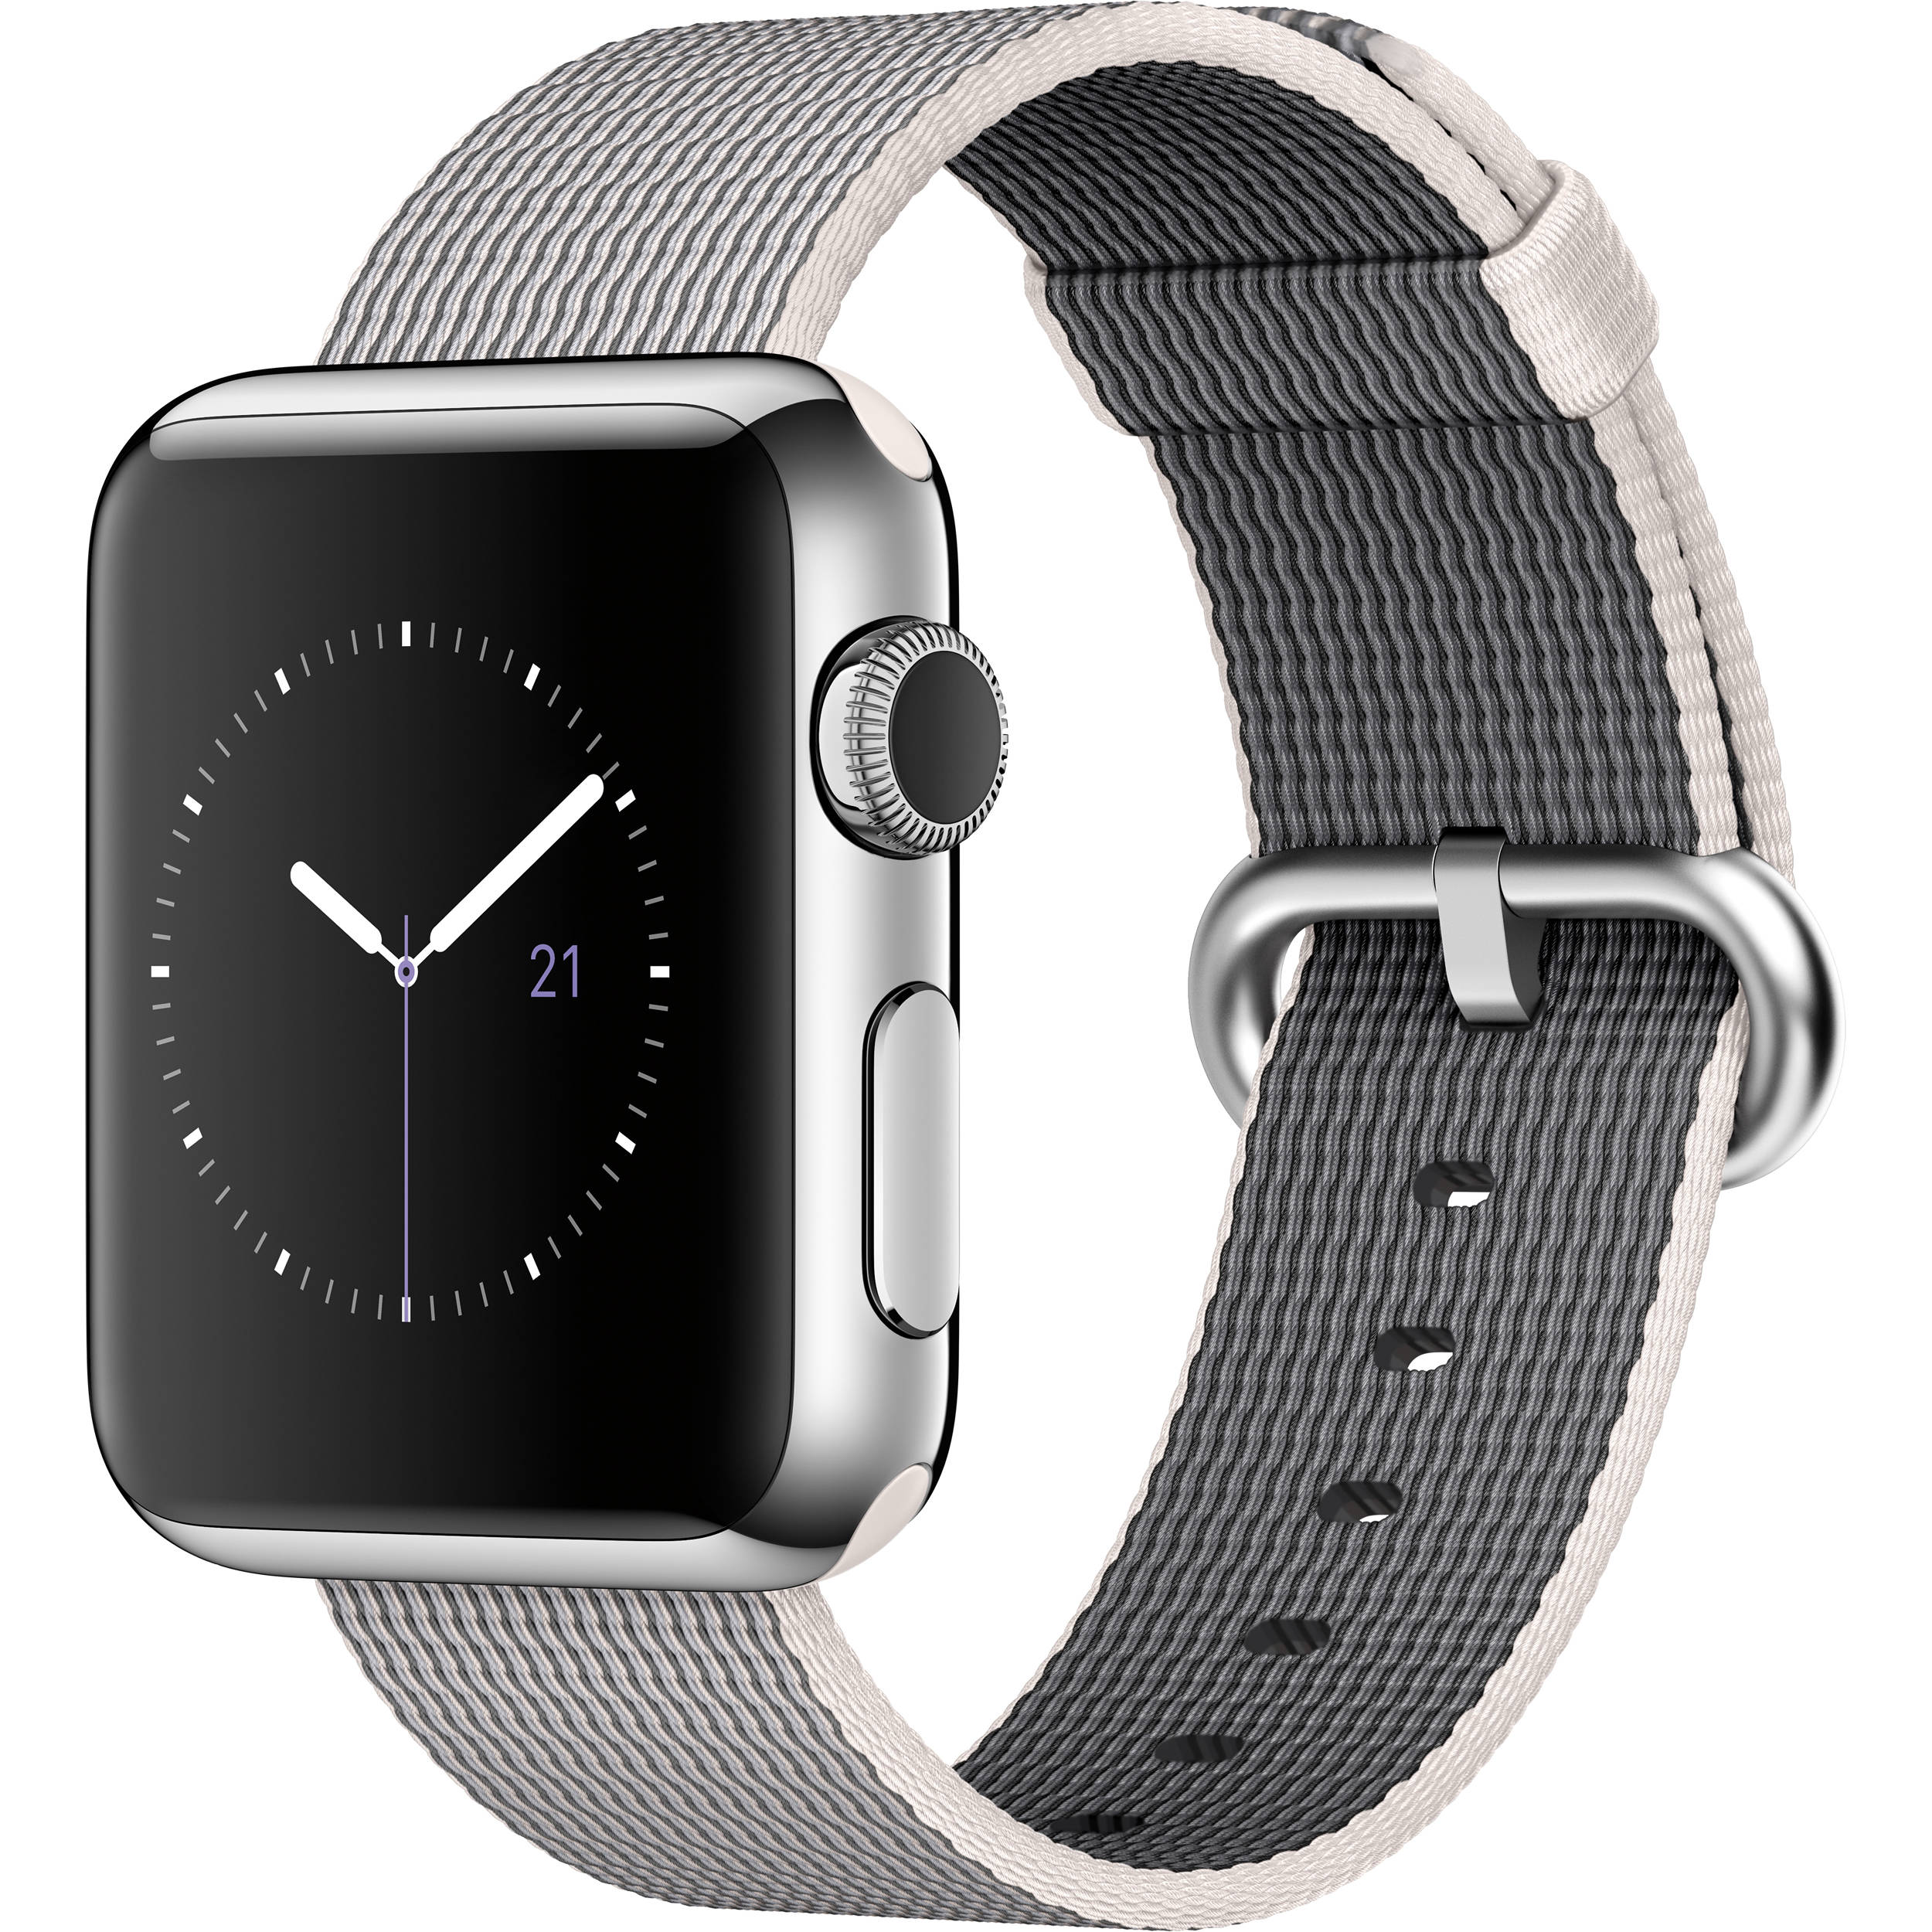 Apple Watch (38mm) Drivers for Windows 10